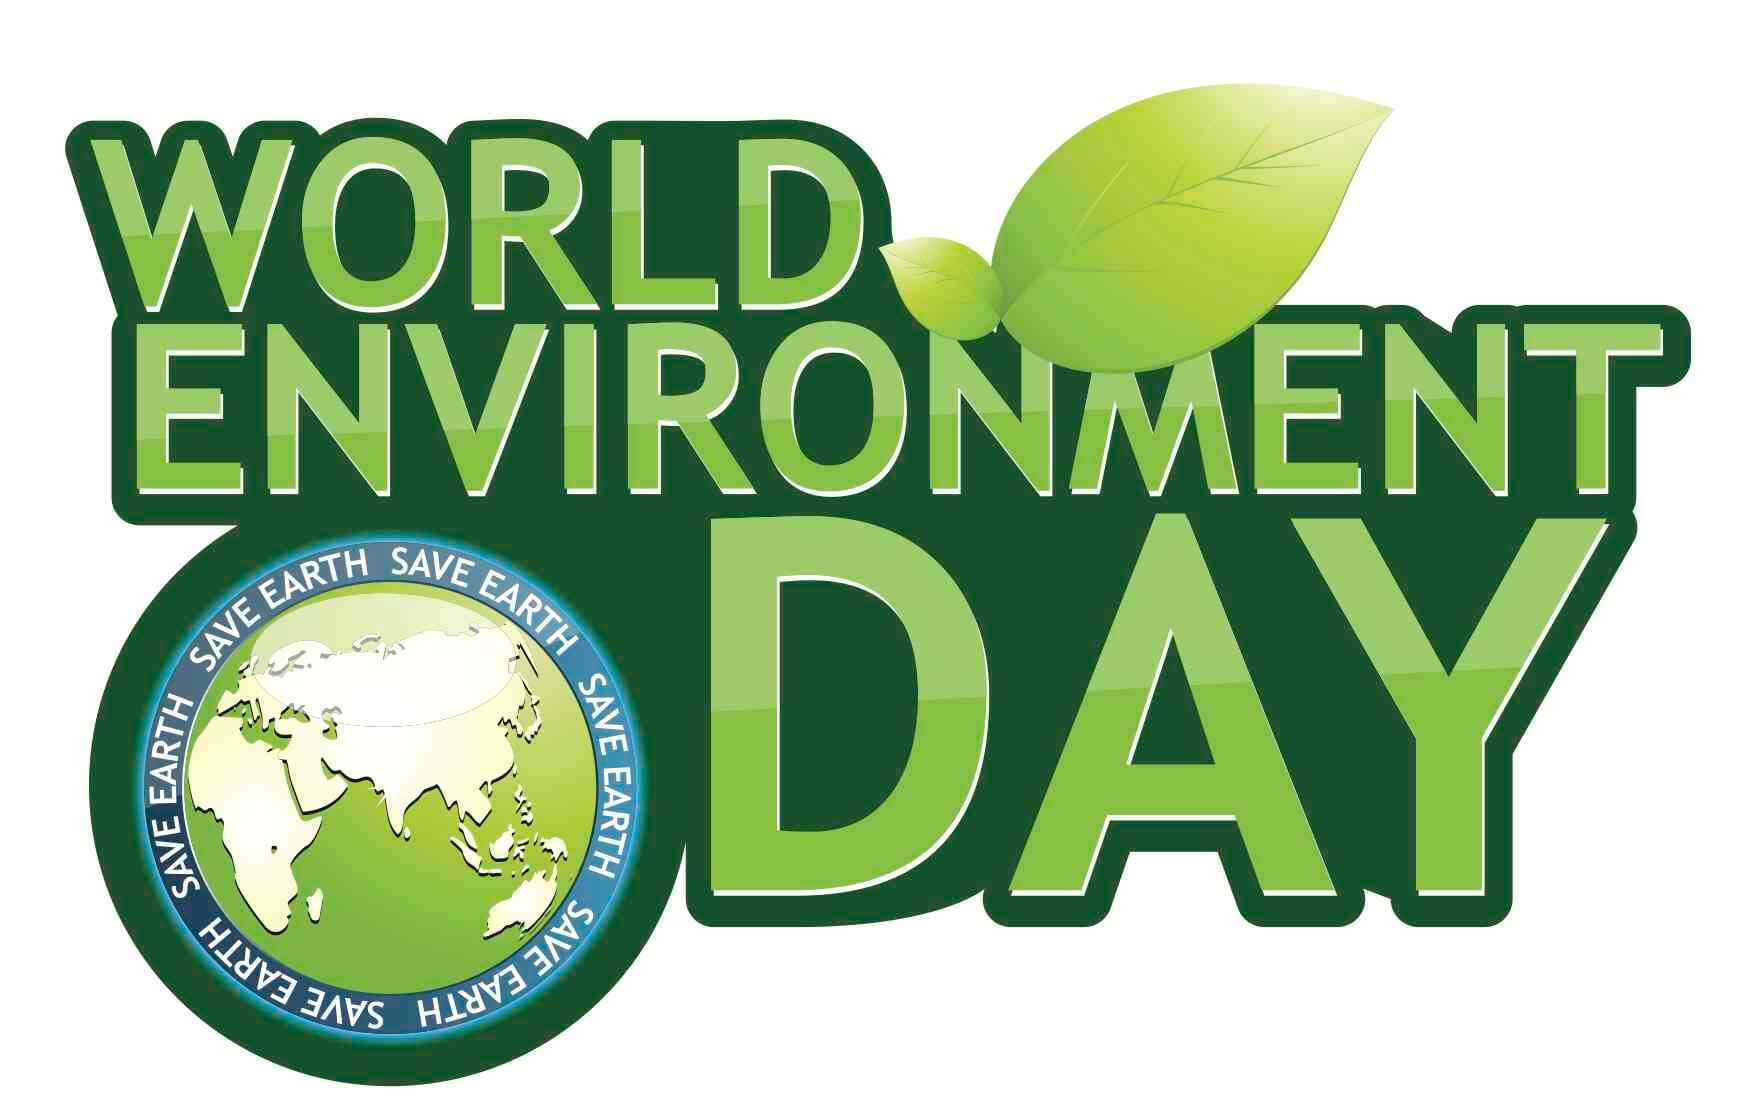 World Environment Day 2019: Images, Themes, Slogans, Quotes